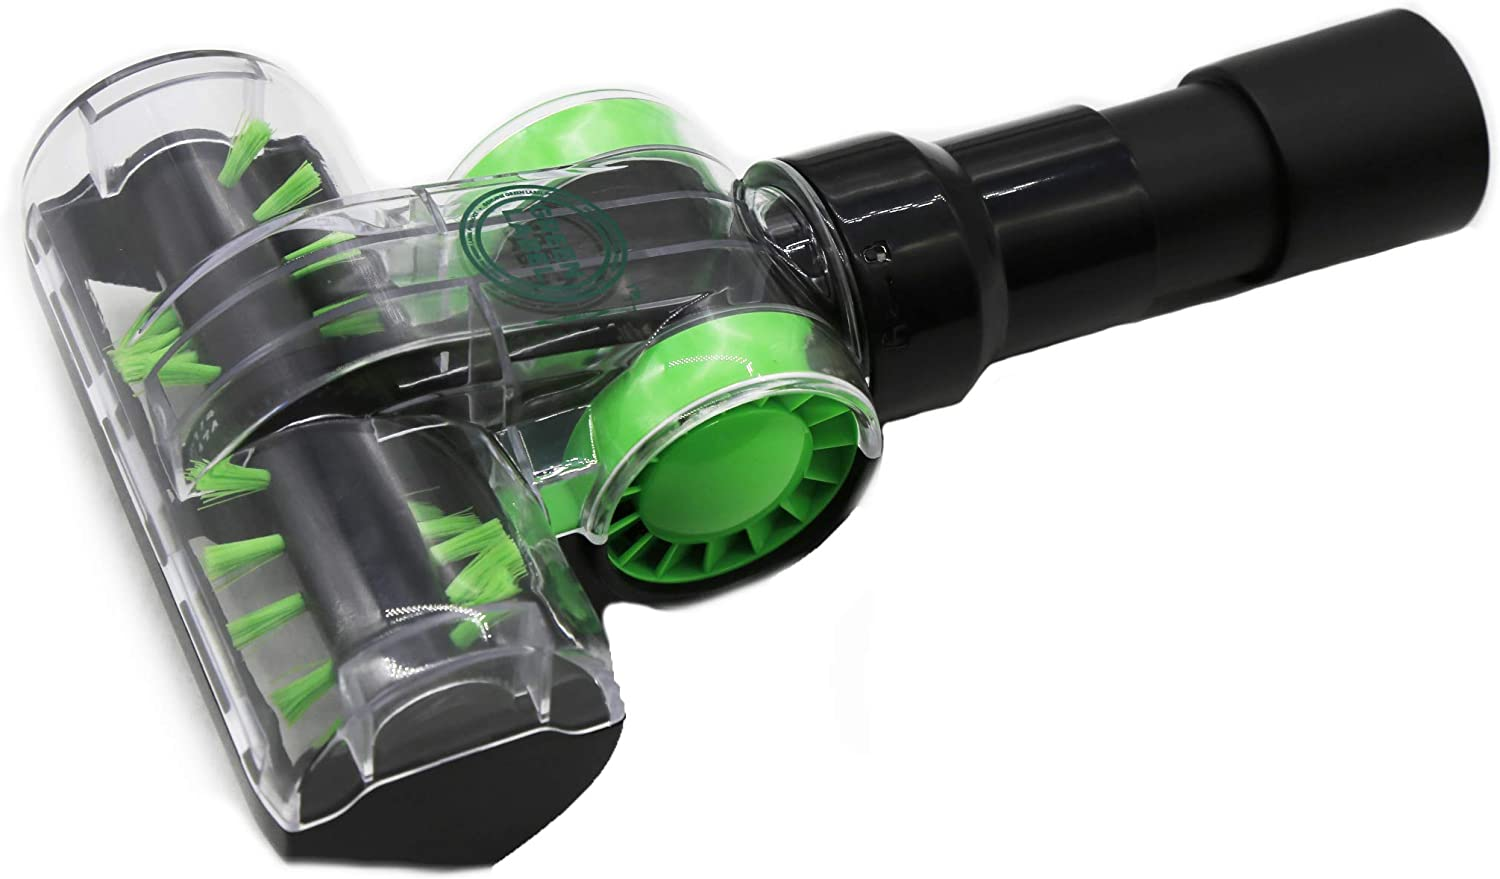 Universal Mini Turbo Brush (Tool) 32-35 mm For Most Vacuum Cleaners (Hoover, Dirt Devil, Bissell, Miele, Samsung, Electrolux, Kenmore, Panasonic and more). Genuine Green Label Product.